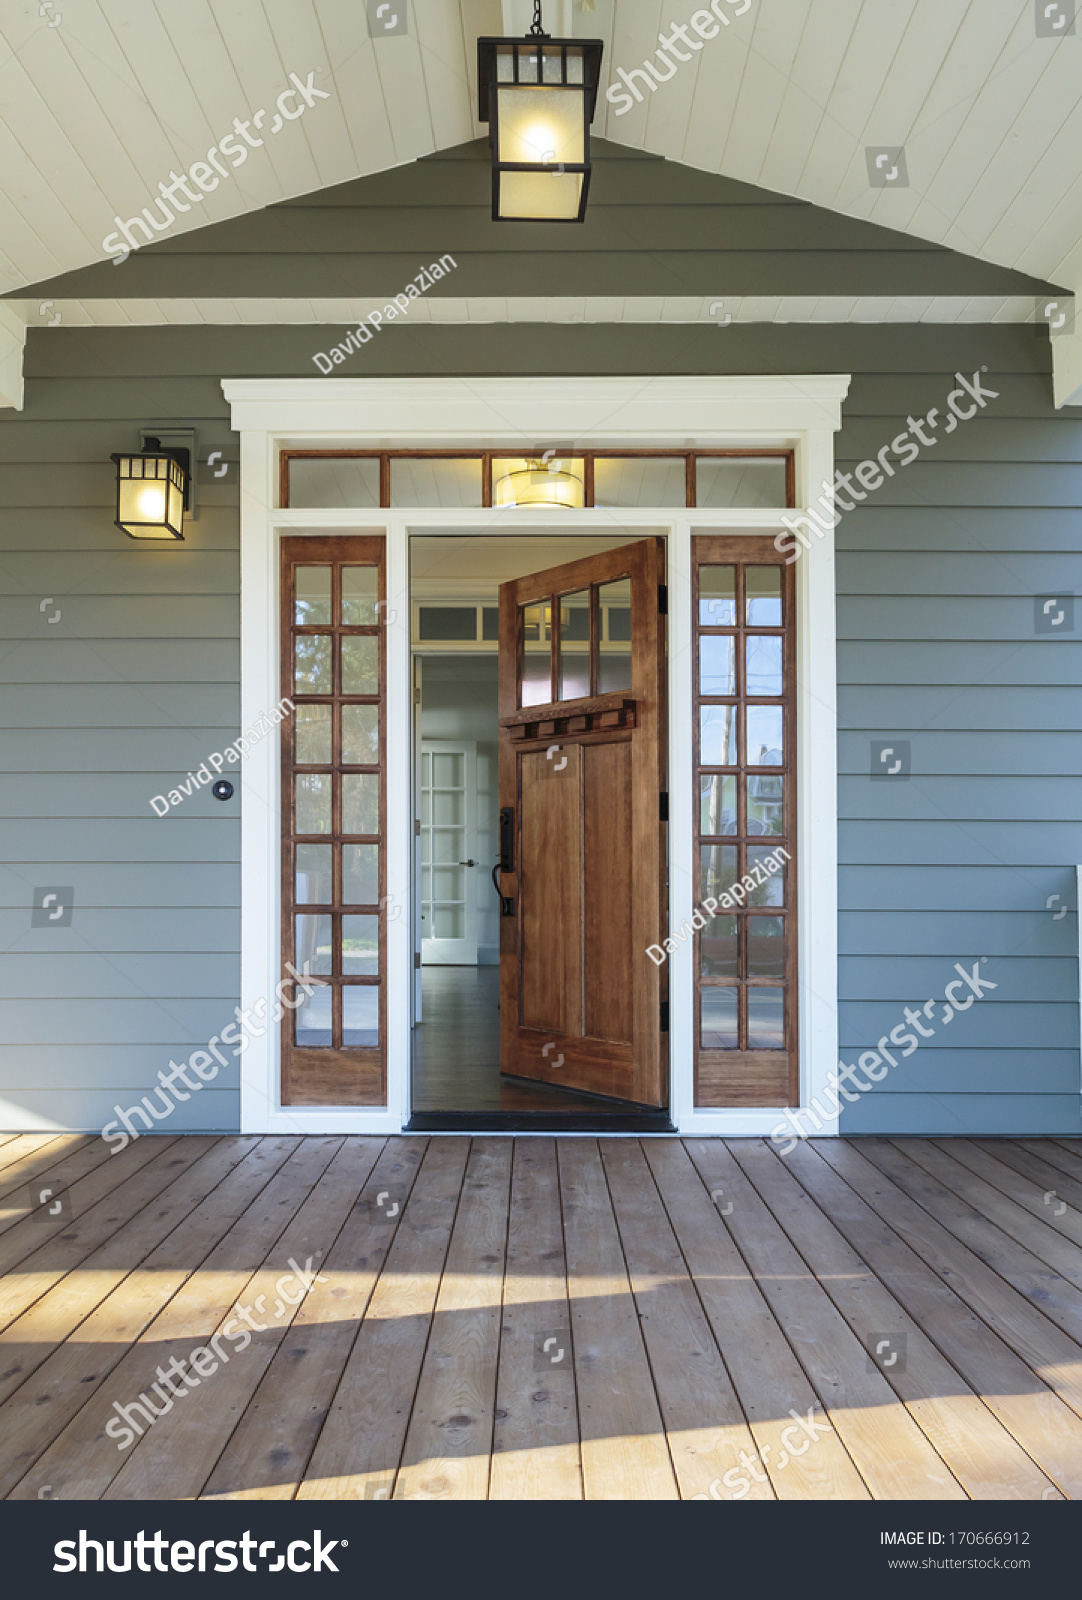 Vertical Shot Wooden Front Door Upscale Stock Photo 170666912 Shutterstock